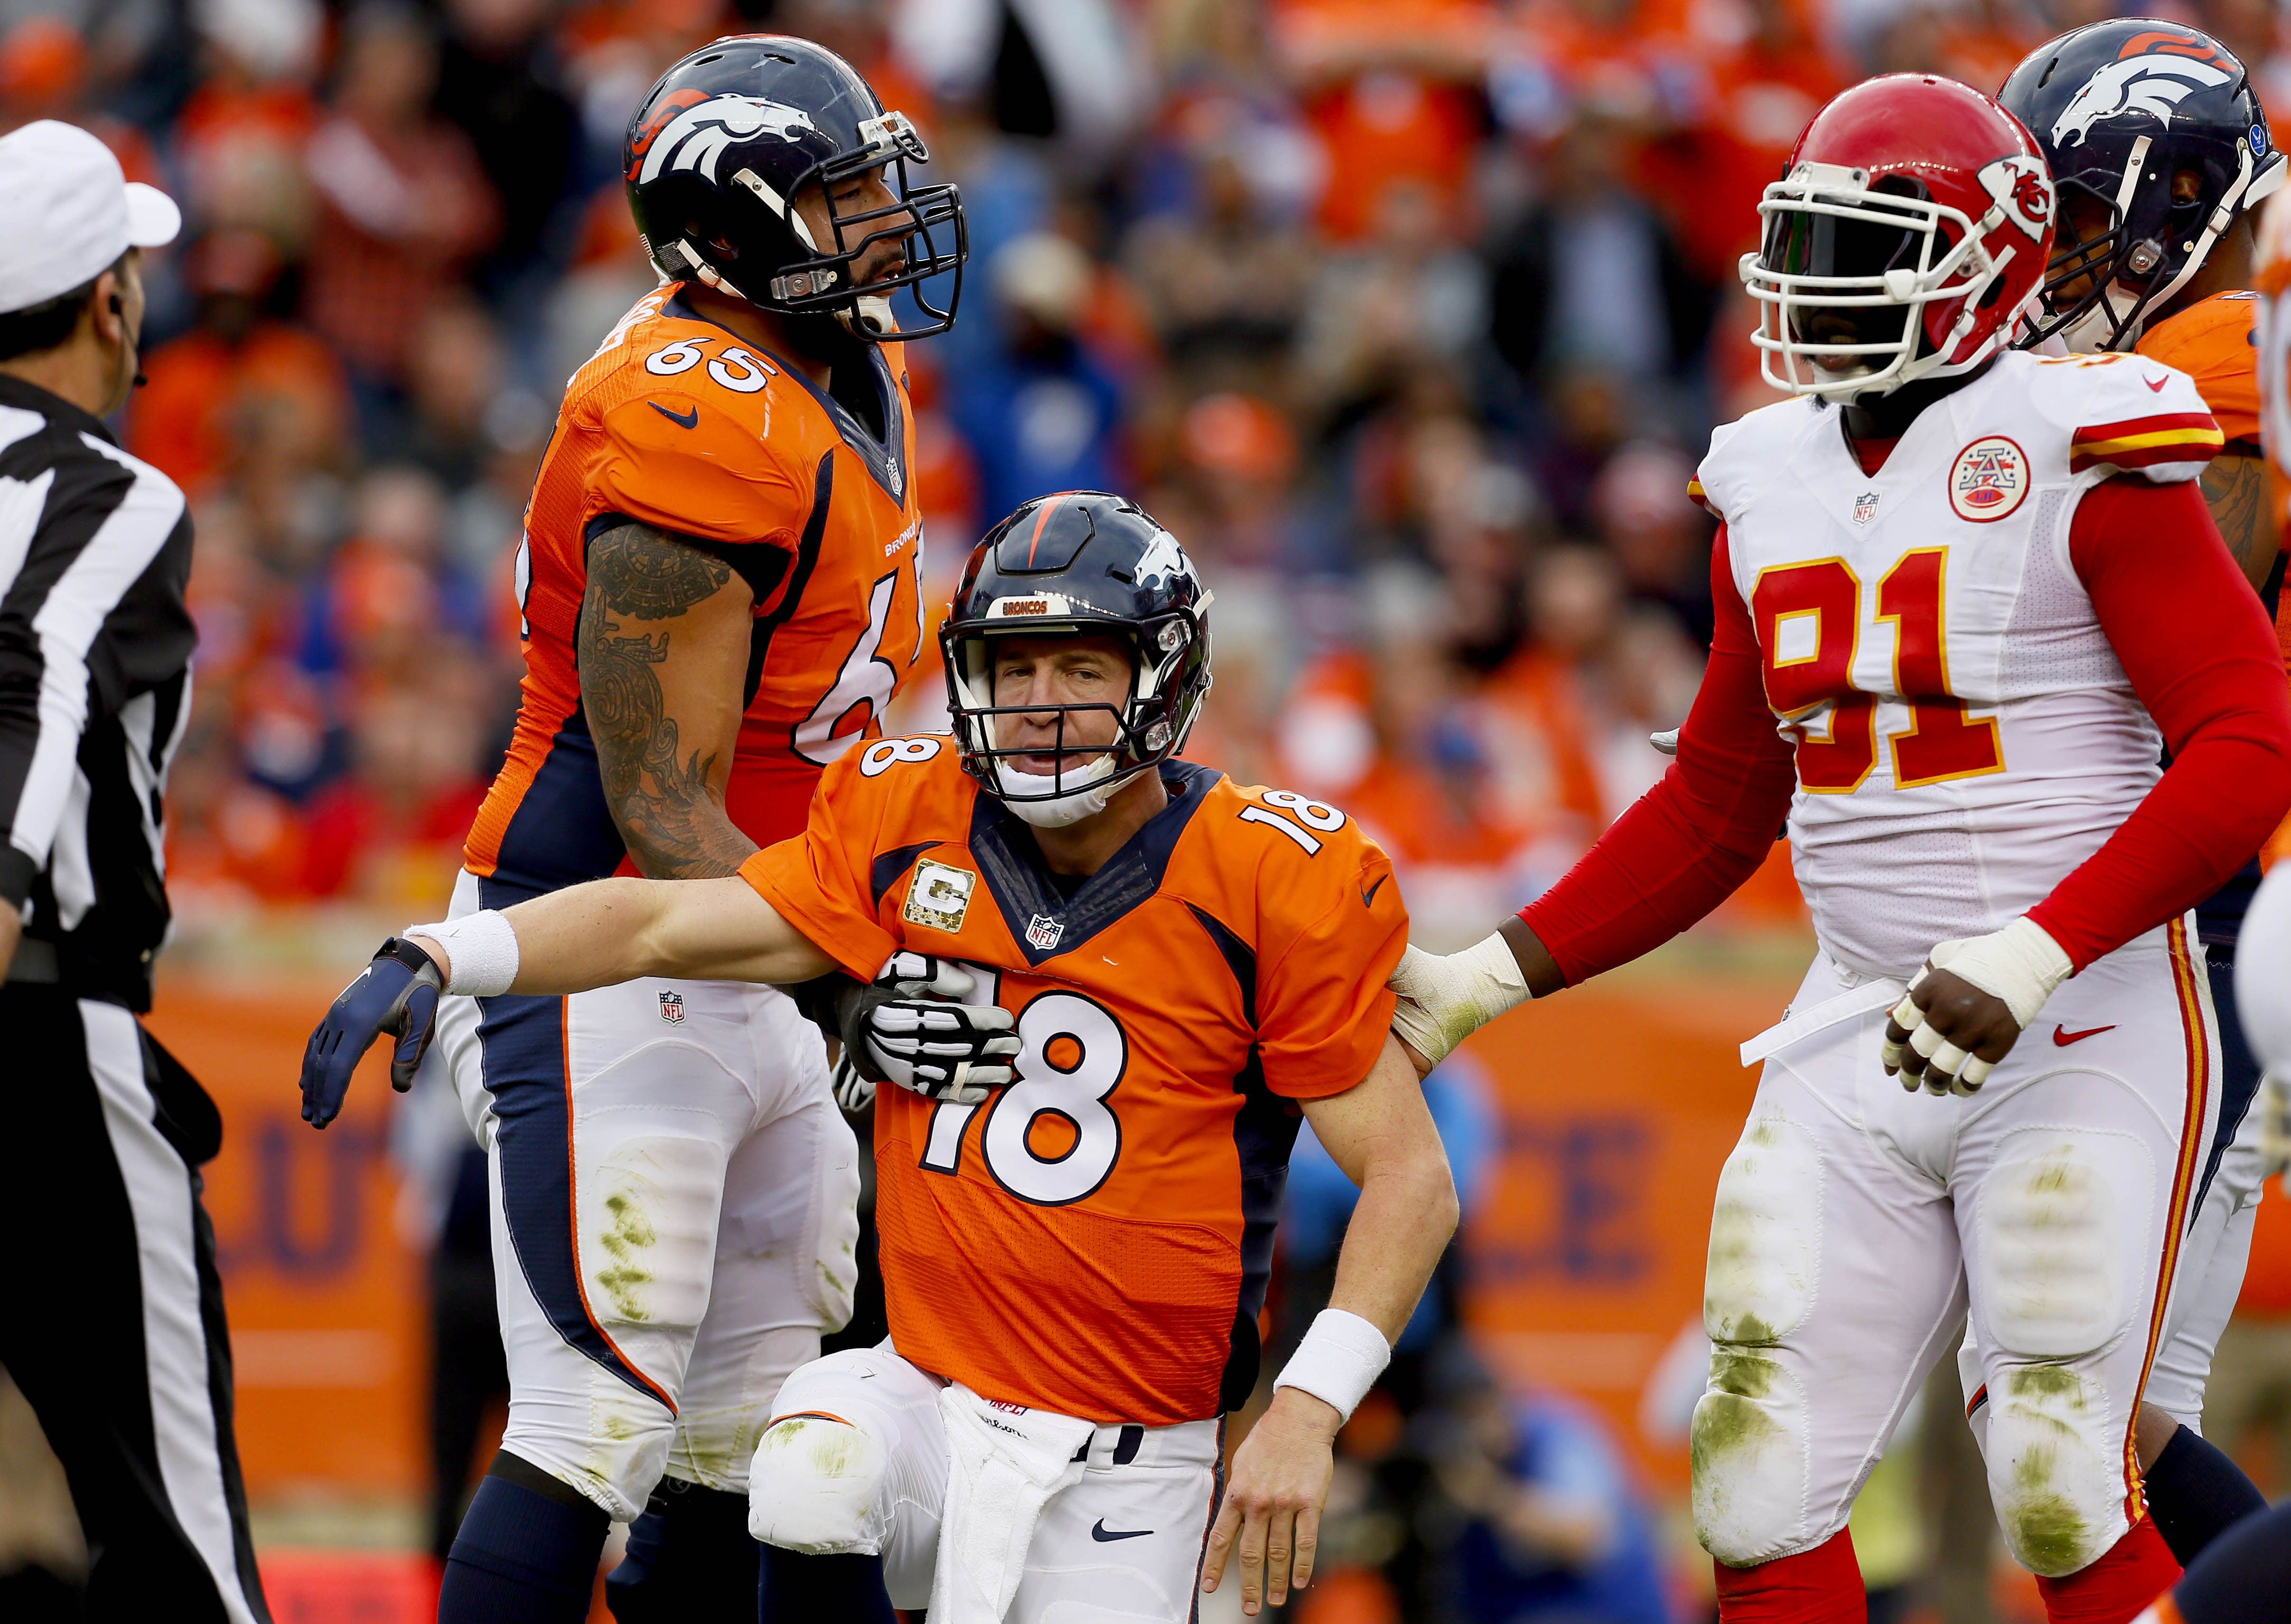 Denver Broncos quarterback Peyton Manning (18) is helped up to his feet by teammate Louis Vasquez (65) and Kansas City Chiefs outside linebacker Tamba Hali (91)after a sack during the first half of an NFL football game, Sunday, Nov. 15, 2015, in Denver. (